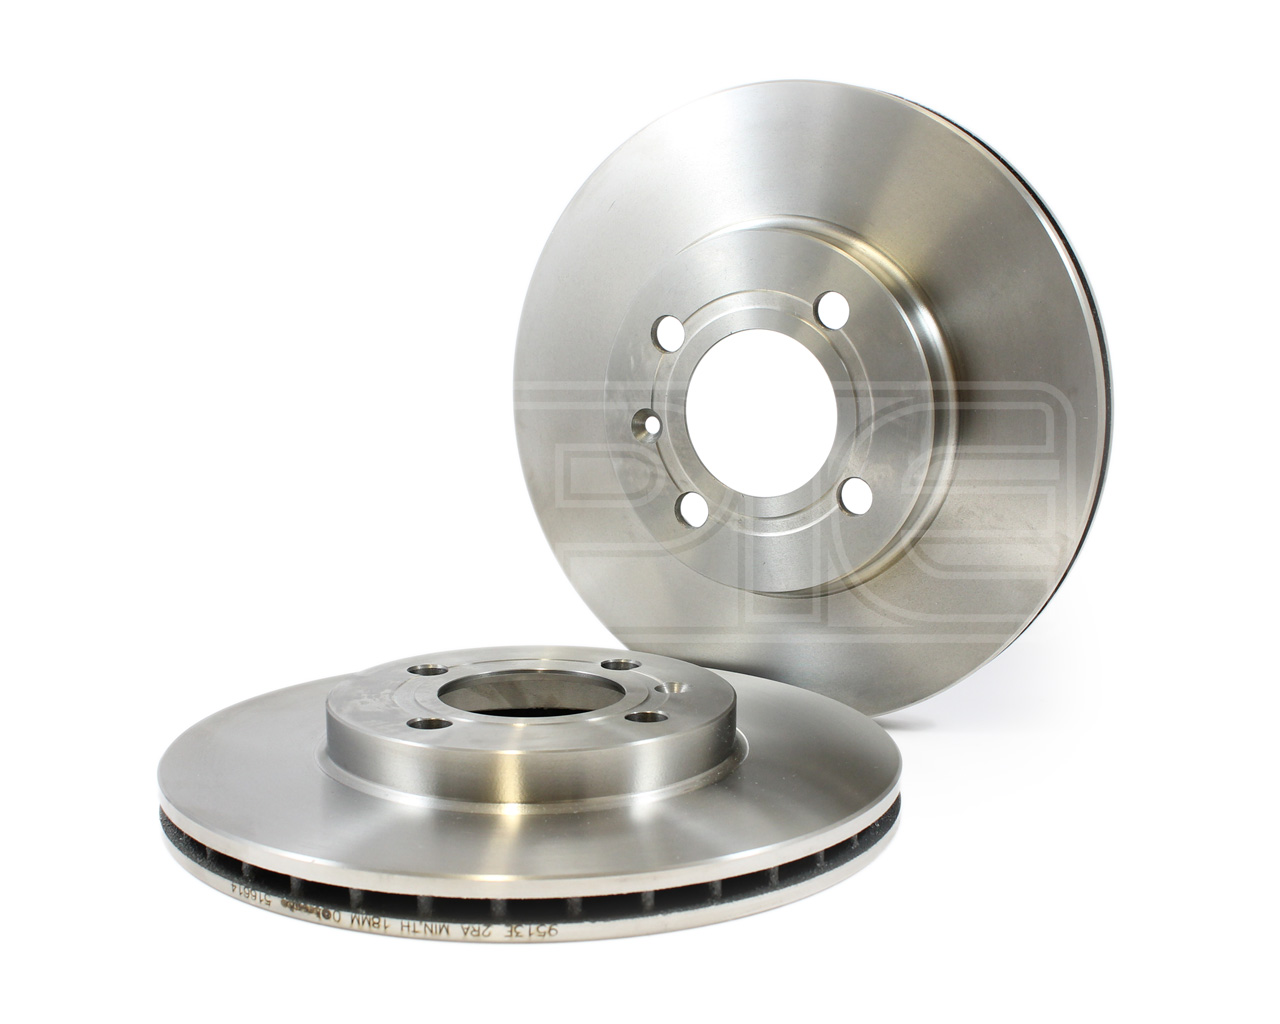 Genuine OE Quality Apec Front Vented Brake Discs DSK109